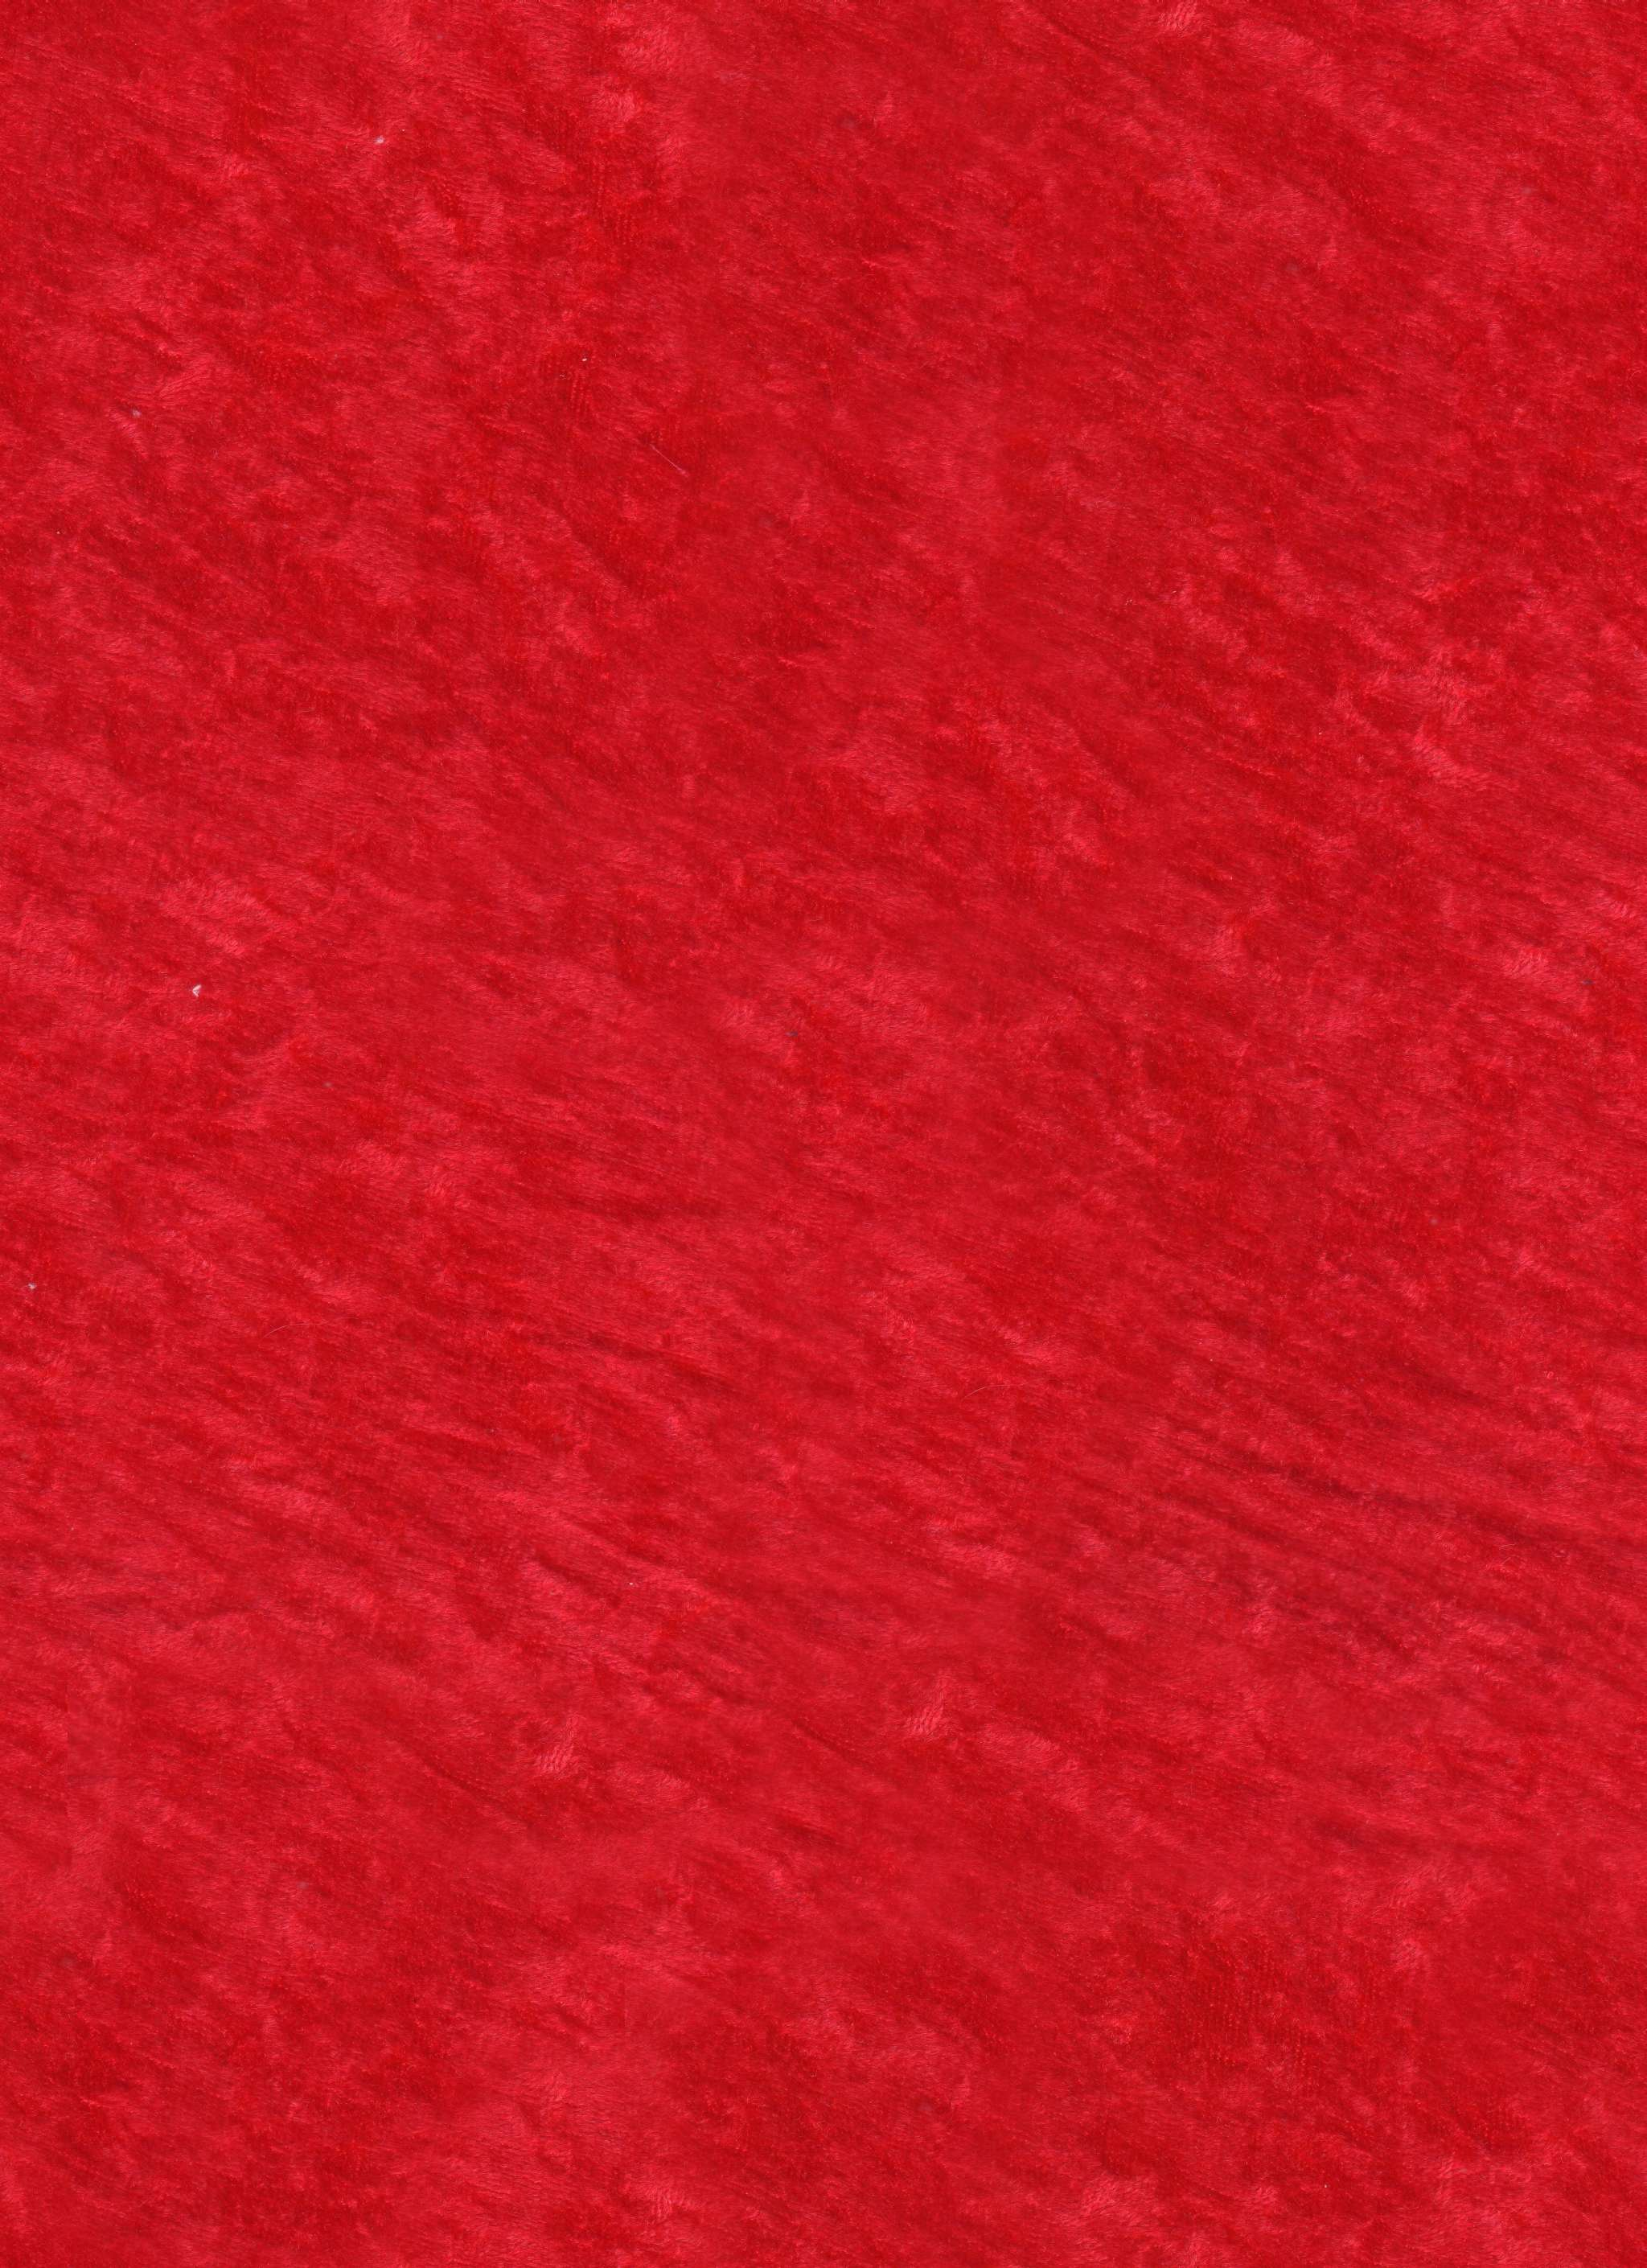 Fabric - Velvet - Red - Seamless Texture With Normalmap ...